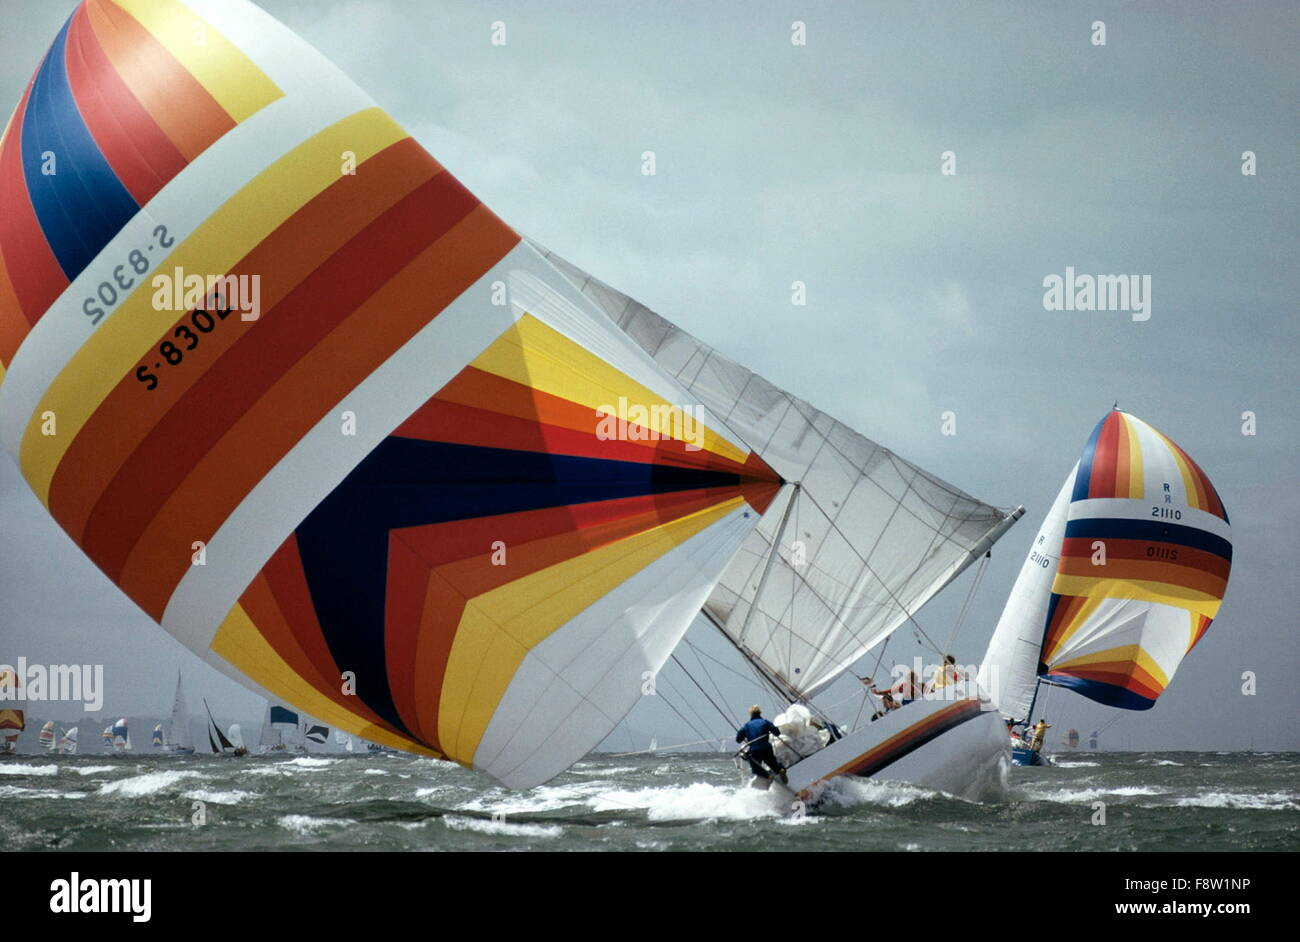 AJAXNETPHOTO. 1979. SOLENT, ENGLAND. - ADMIRAL'S CUP - SWEDEN'S TEAM YACHT MIDNIGHT SUN ROLLS HEAVILY IN - Stock Image